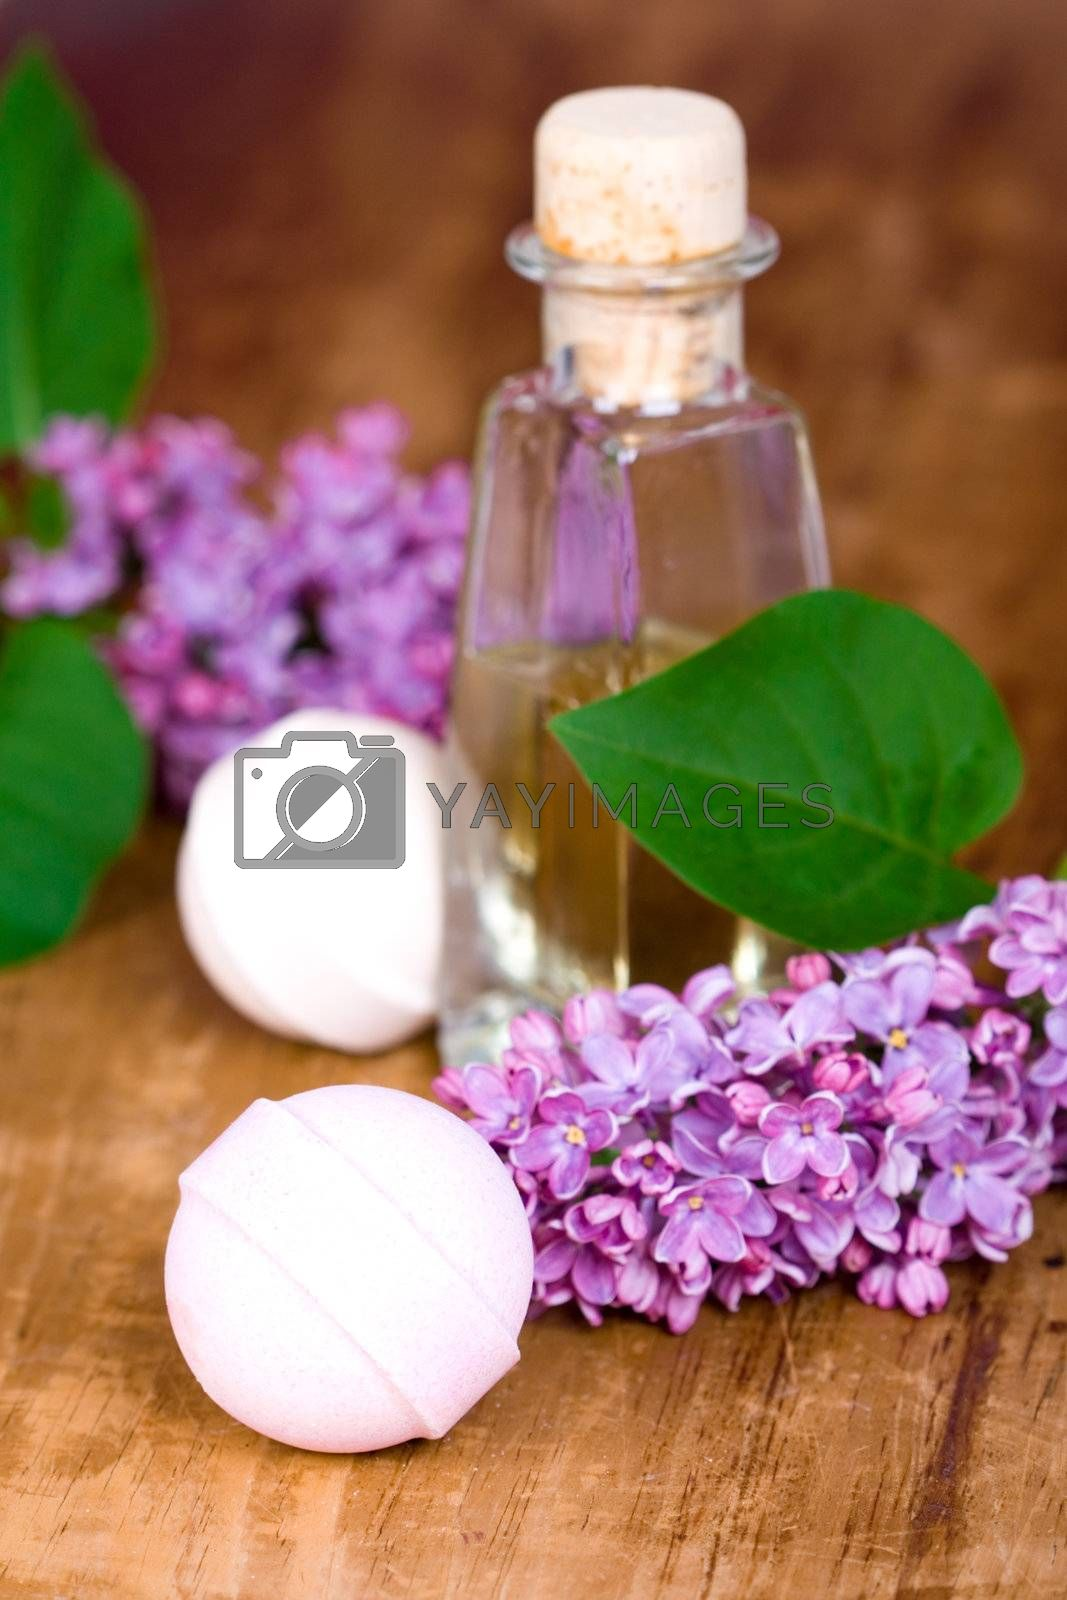 bath and spa items (oil, lilac, balls) on wooden background